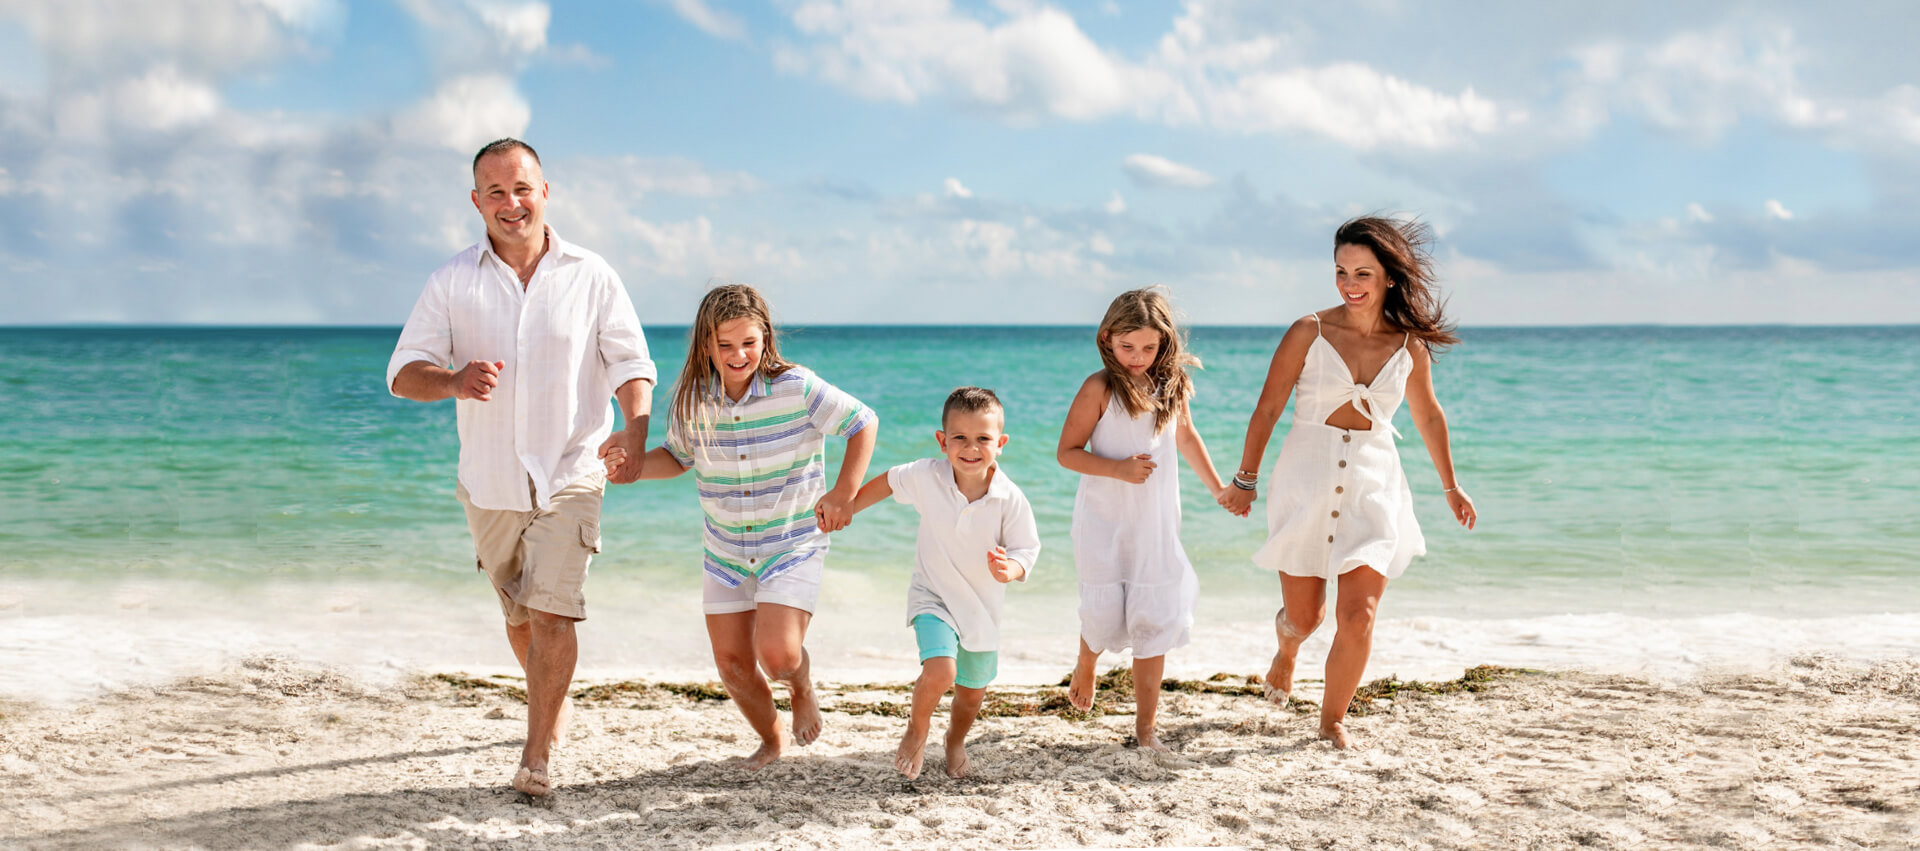 Portrait of a family holding hands while running toward the camera on the beach.